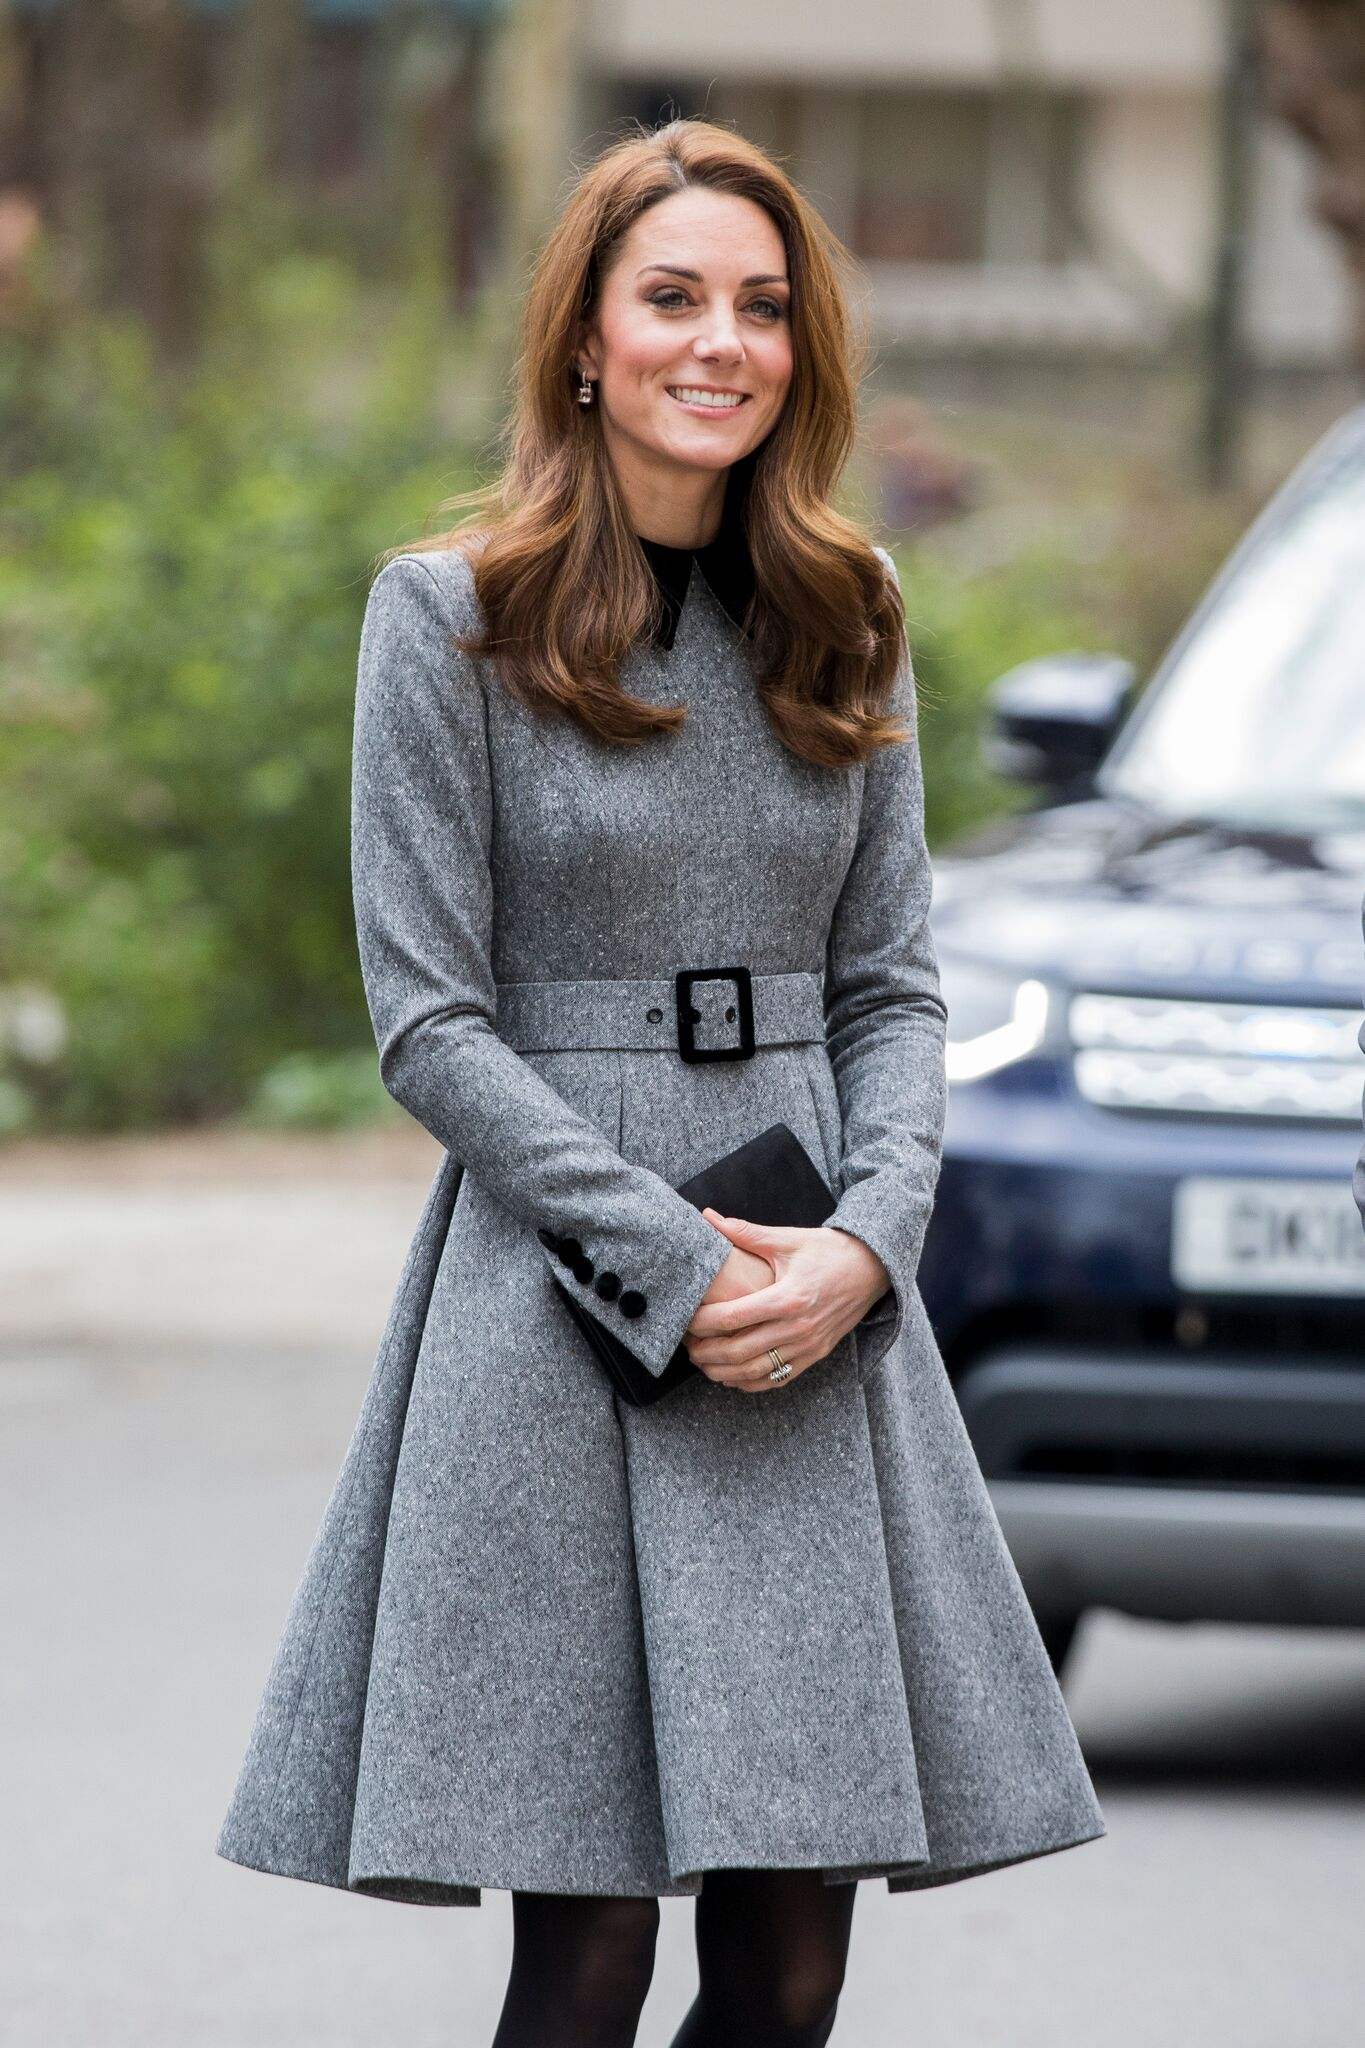 Duchess Of Cambridge visits The Foundling Museum | Getty Images